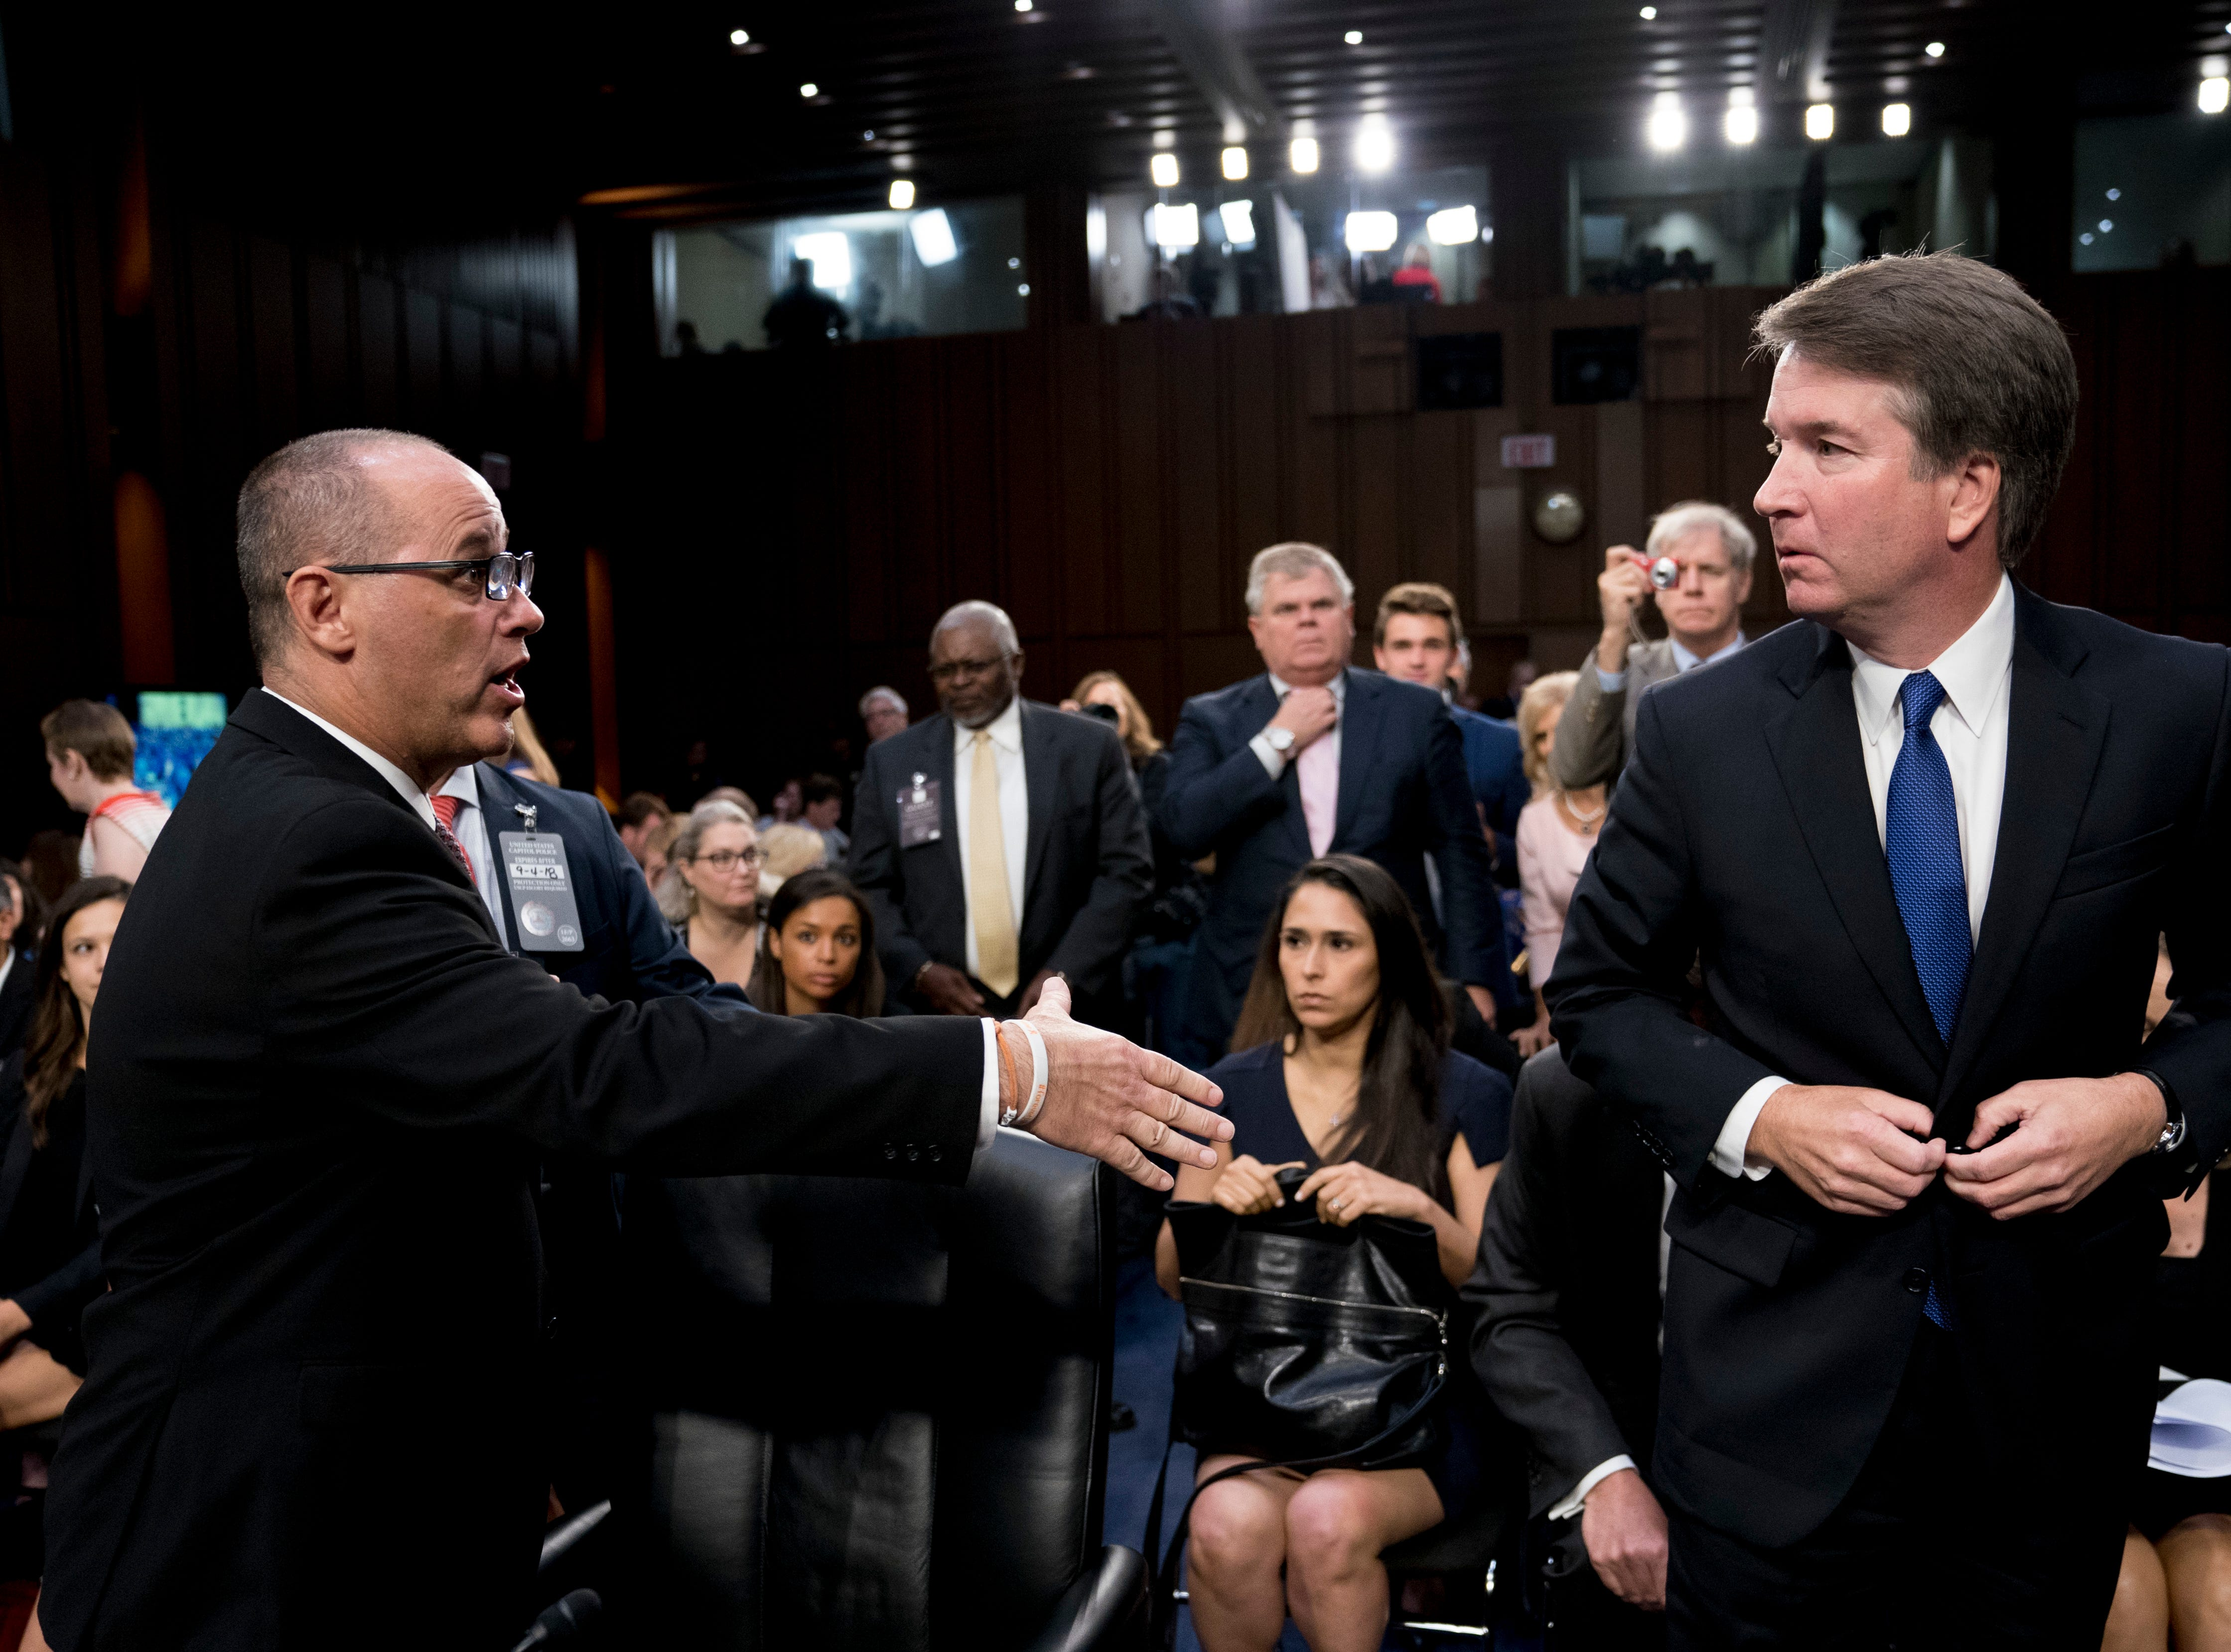 Fred Guttenberg, the father of Jamie Guttenberg who was killed in the Stoneman Douglas High School shooting in Parkland, Florida, left, attempts to shake hands with President Donald Trump's Supreme Court nominee, Brett Kavanaugh, right, as he leaves for a lunch break while appearing before the Senate Judiciary Committee on Capitol Hill in Washington.